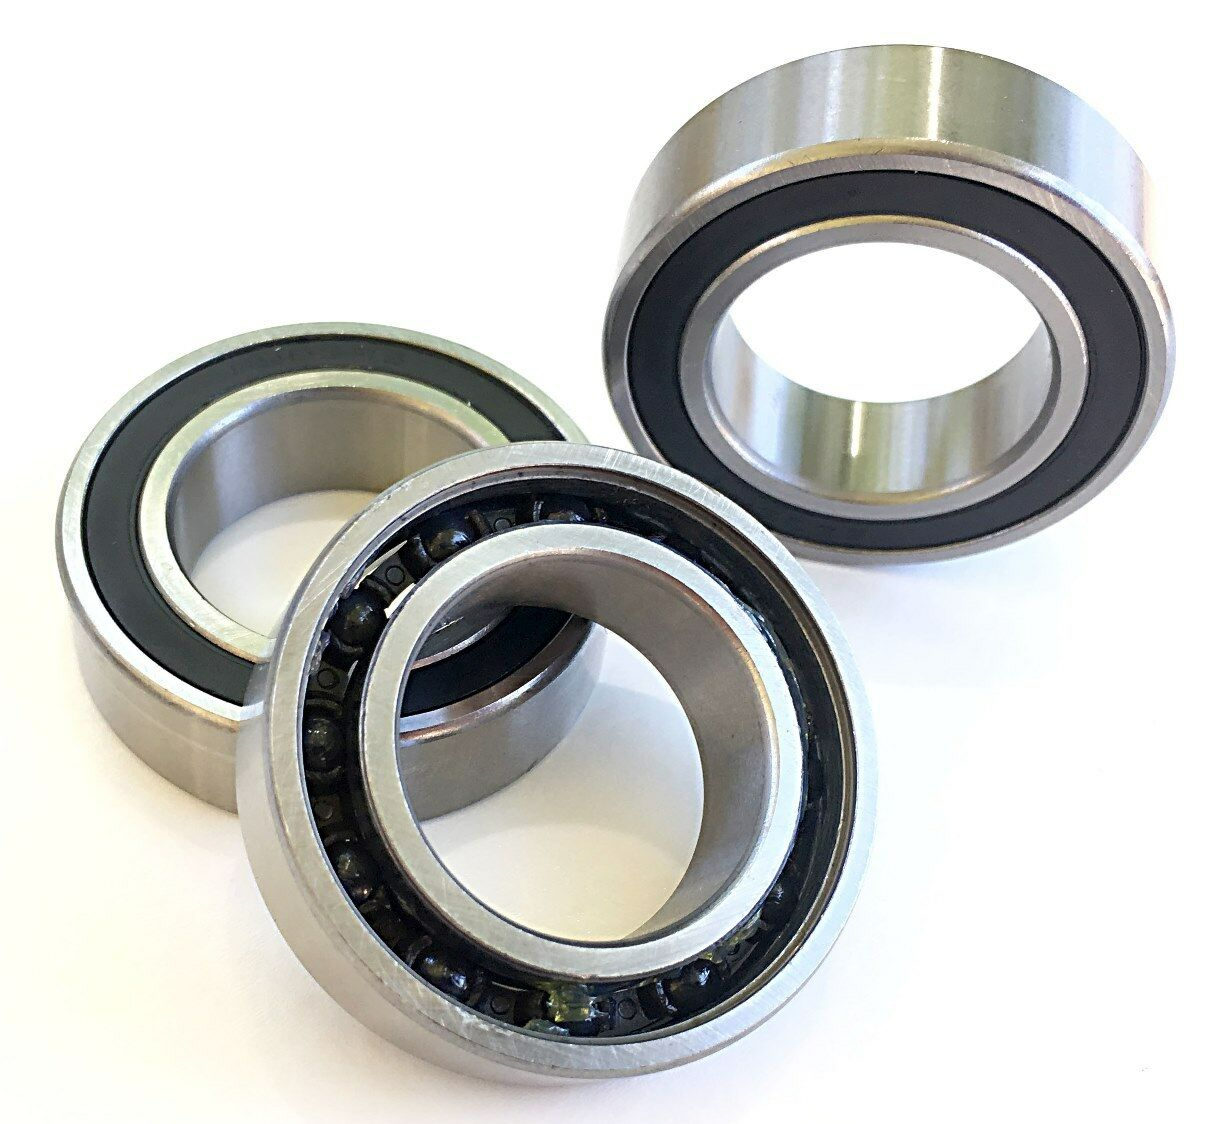 CERAMIC Hybrid Kart Wheel Bearing OTK  25x42x12  CRG  25x42xx9  Others  17x35x10